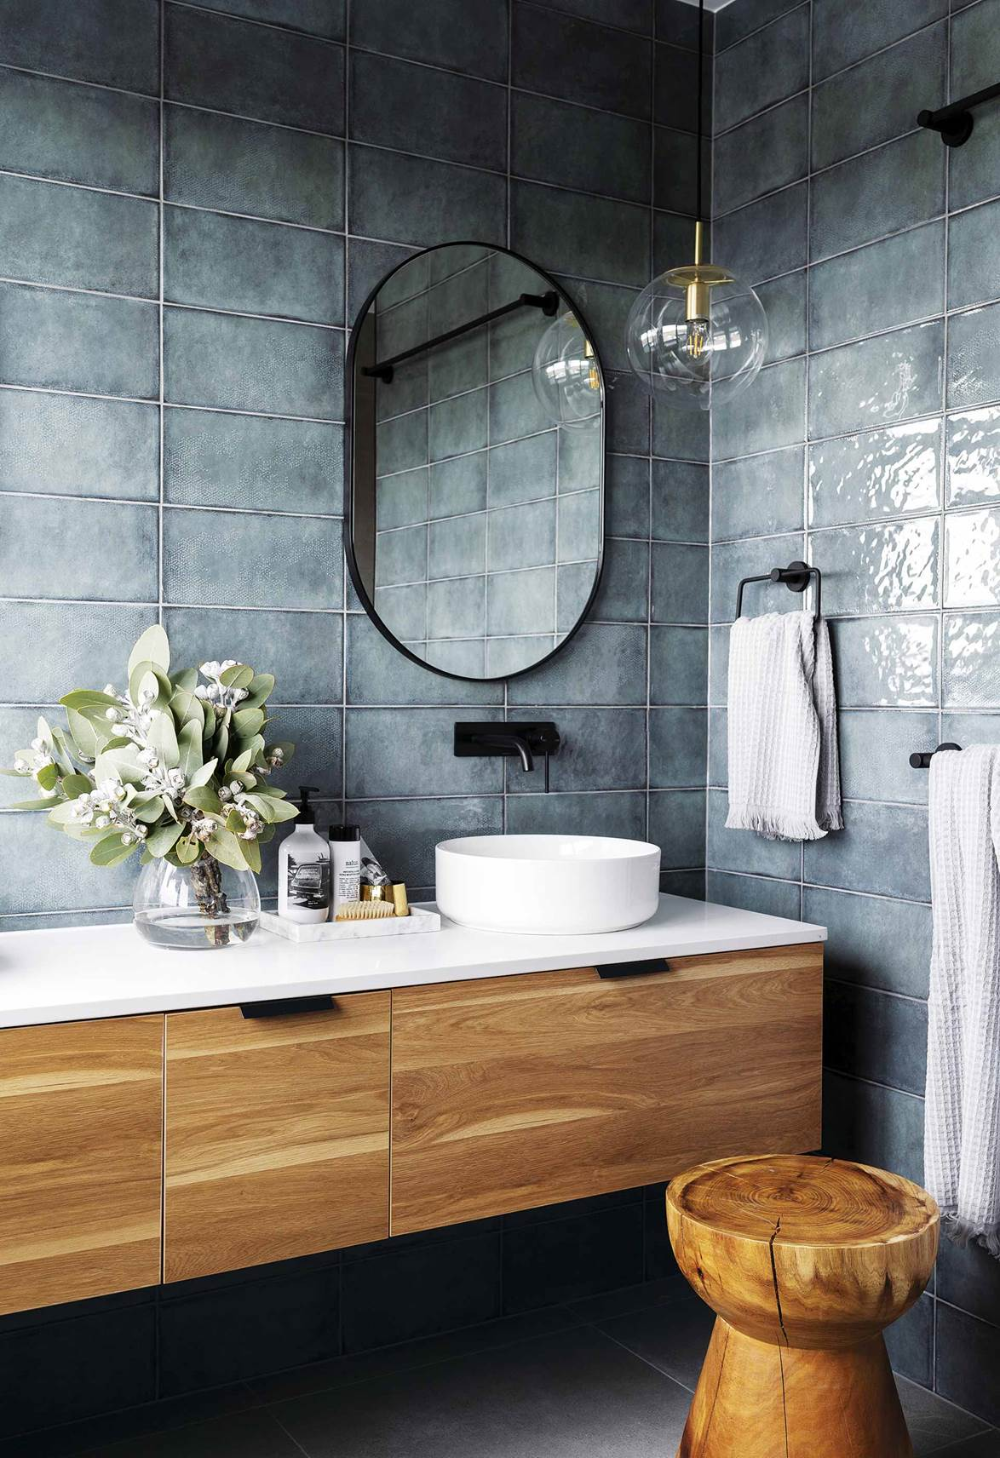 Photo of 6 bathroom decor ideas to try in 2019